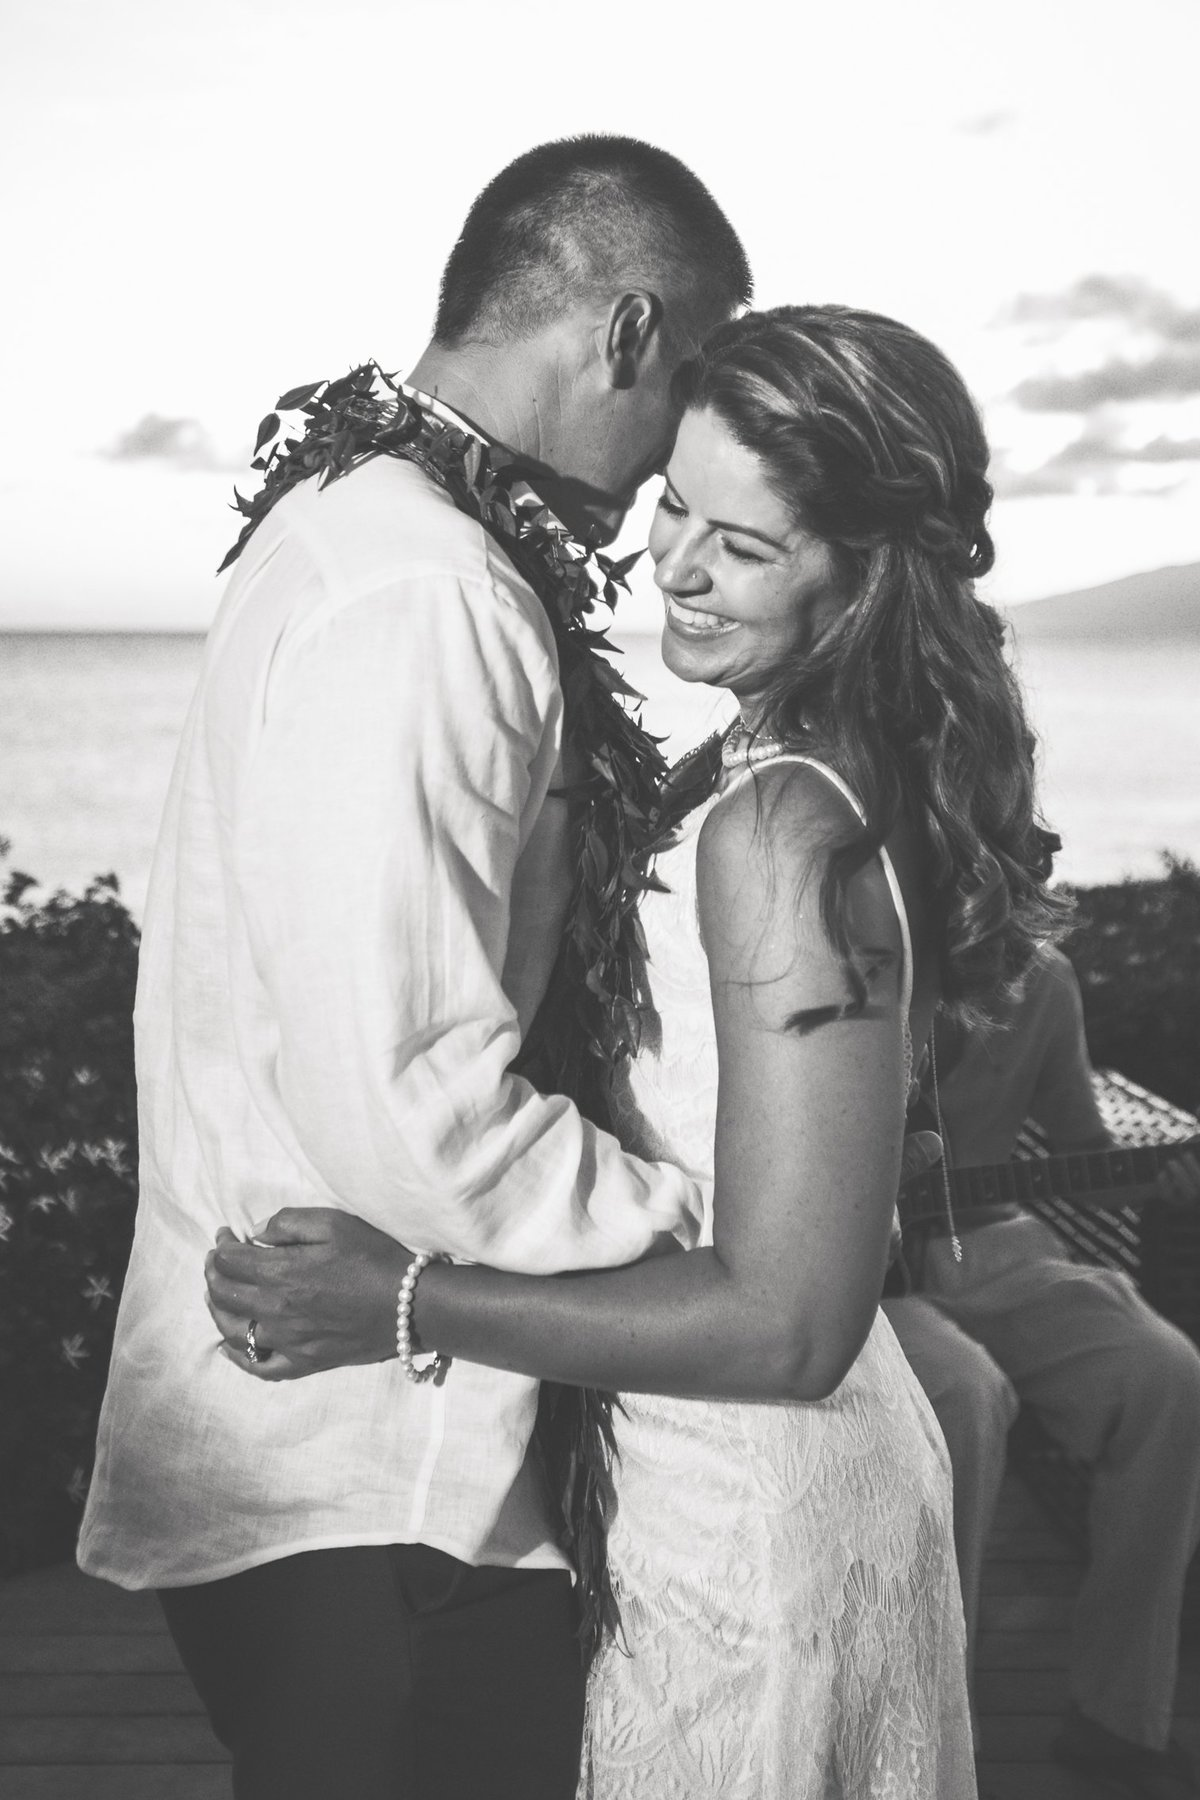 Maui Wedding Photography at Kapalua Bay beach